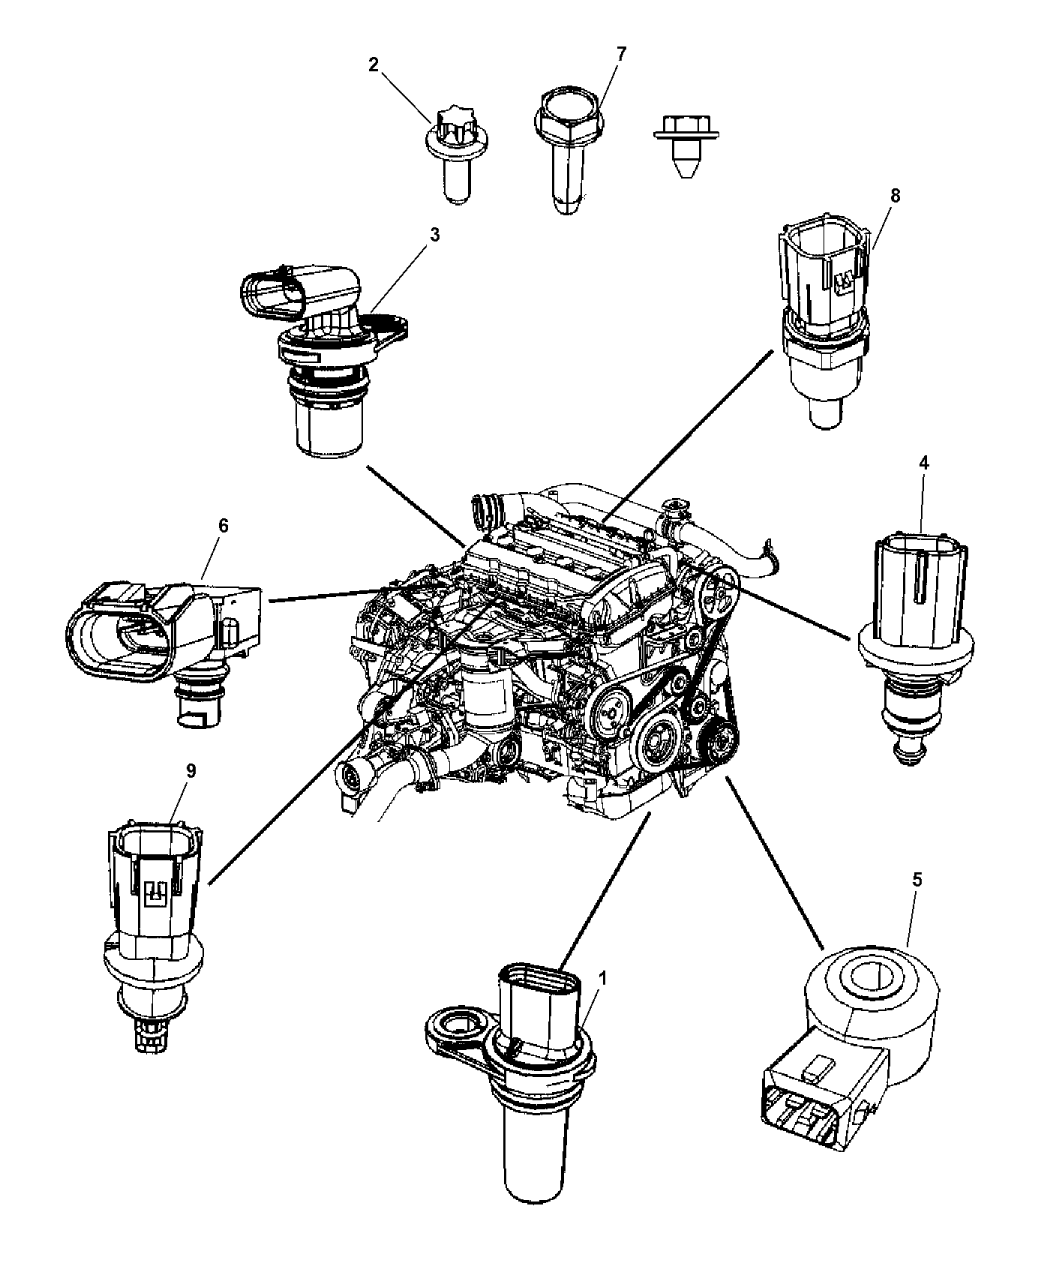 jeep compass engine diagram | horizon-rider wiring diagrams -  horizon-rider.ferbud.eu  ferbud.eu